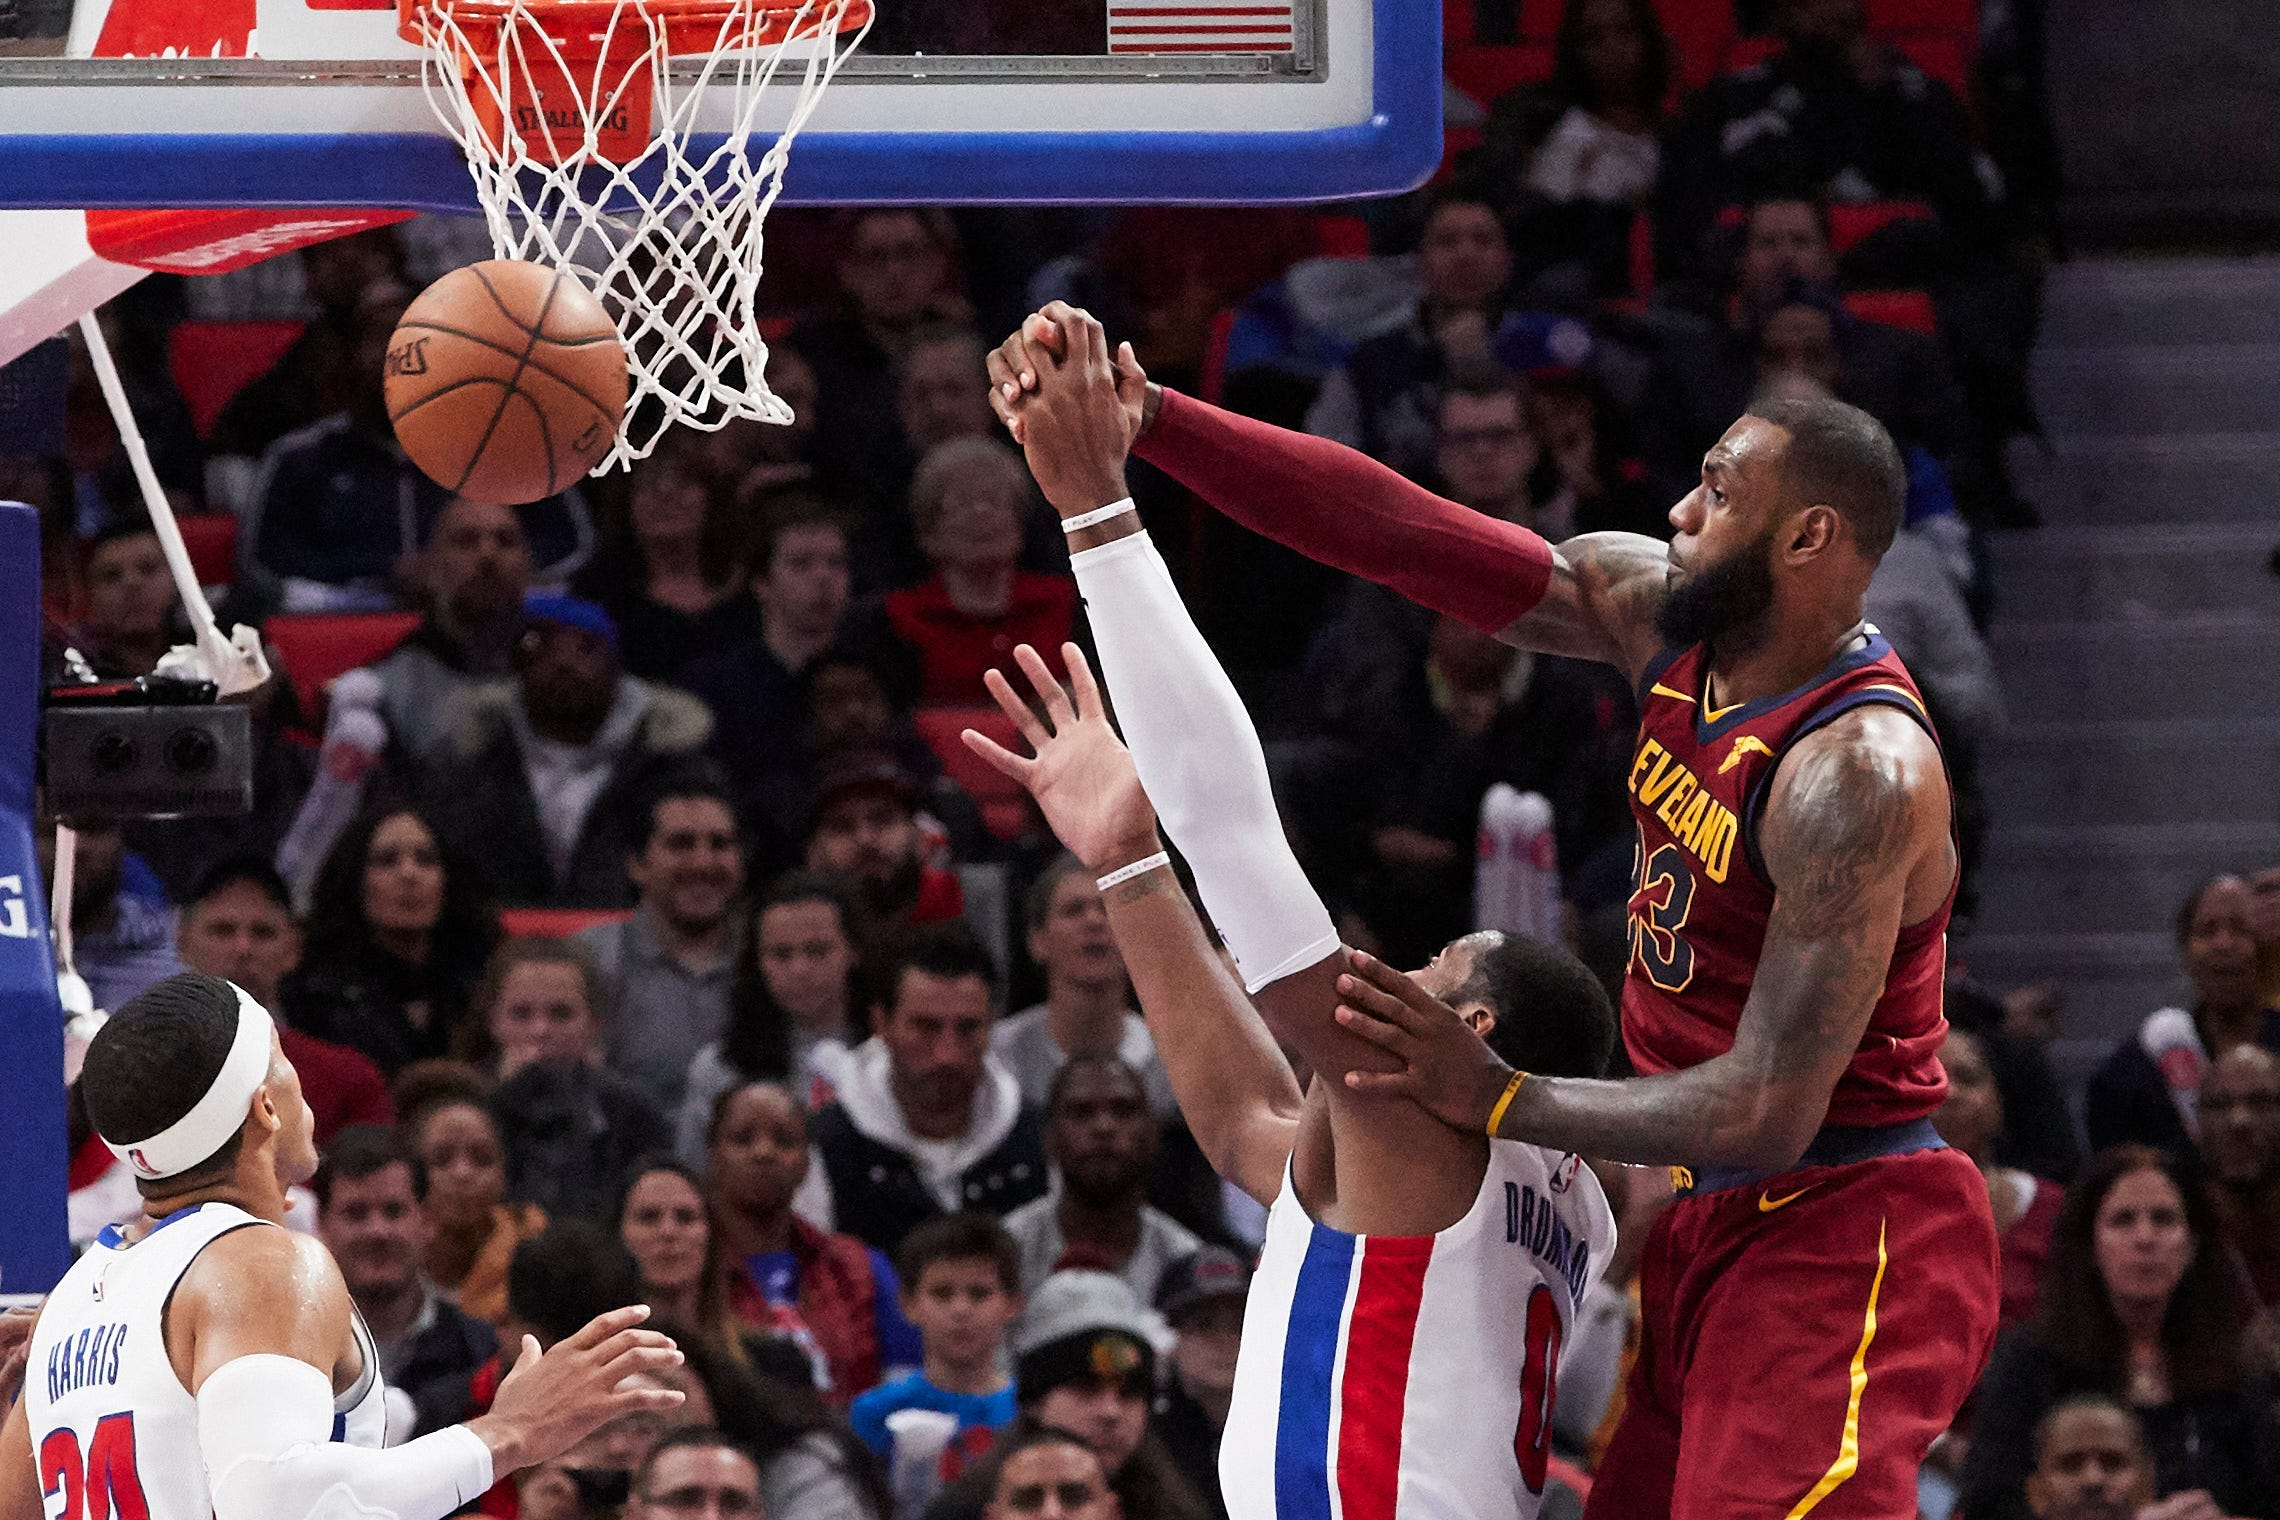 NBA Week 5 conclusions: Cavs' defense isn't awful, and are the Clippers due for a major shake-up?